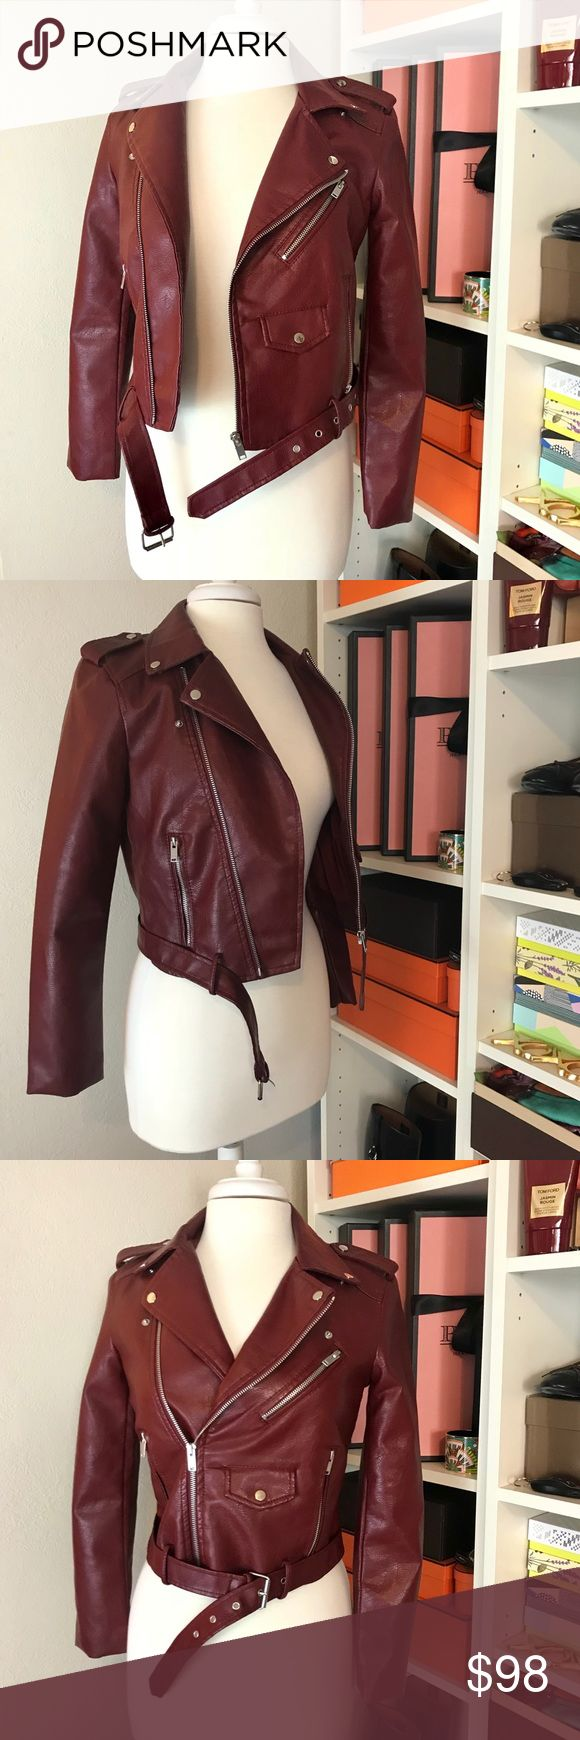 Burgundy Moto Biker Motorcycle Jacket Maroon Red Vegan